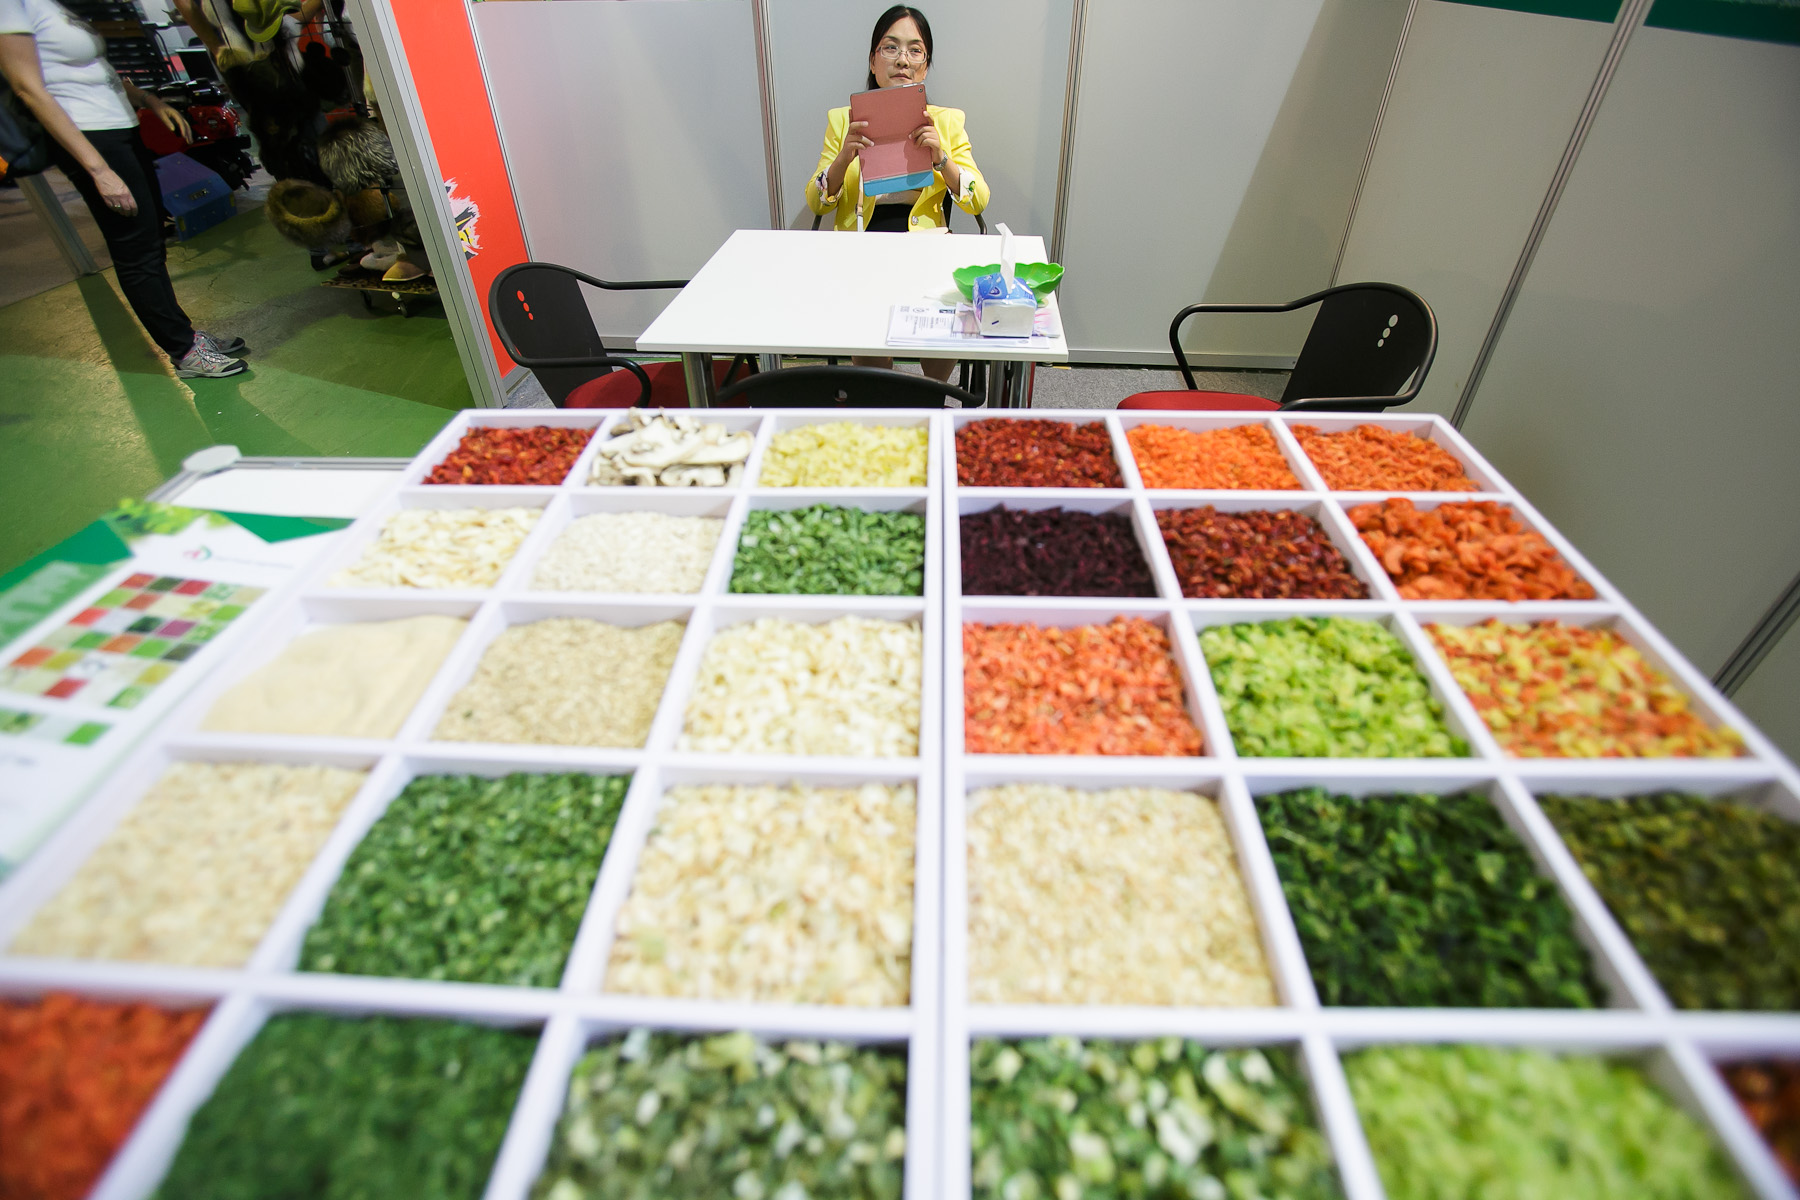 Chinese company Yancheng Dadi Foods presents air dried vegetable products at the 53rd agricultural fair Agra in Gornja Radgona, Slovenia, Aug. 22, 2015.